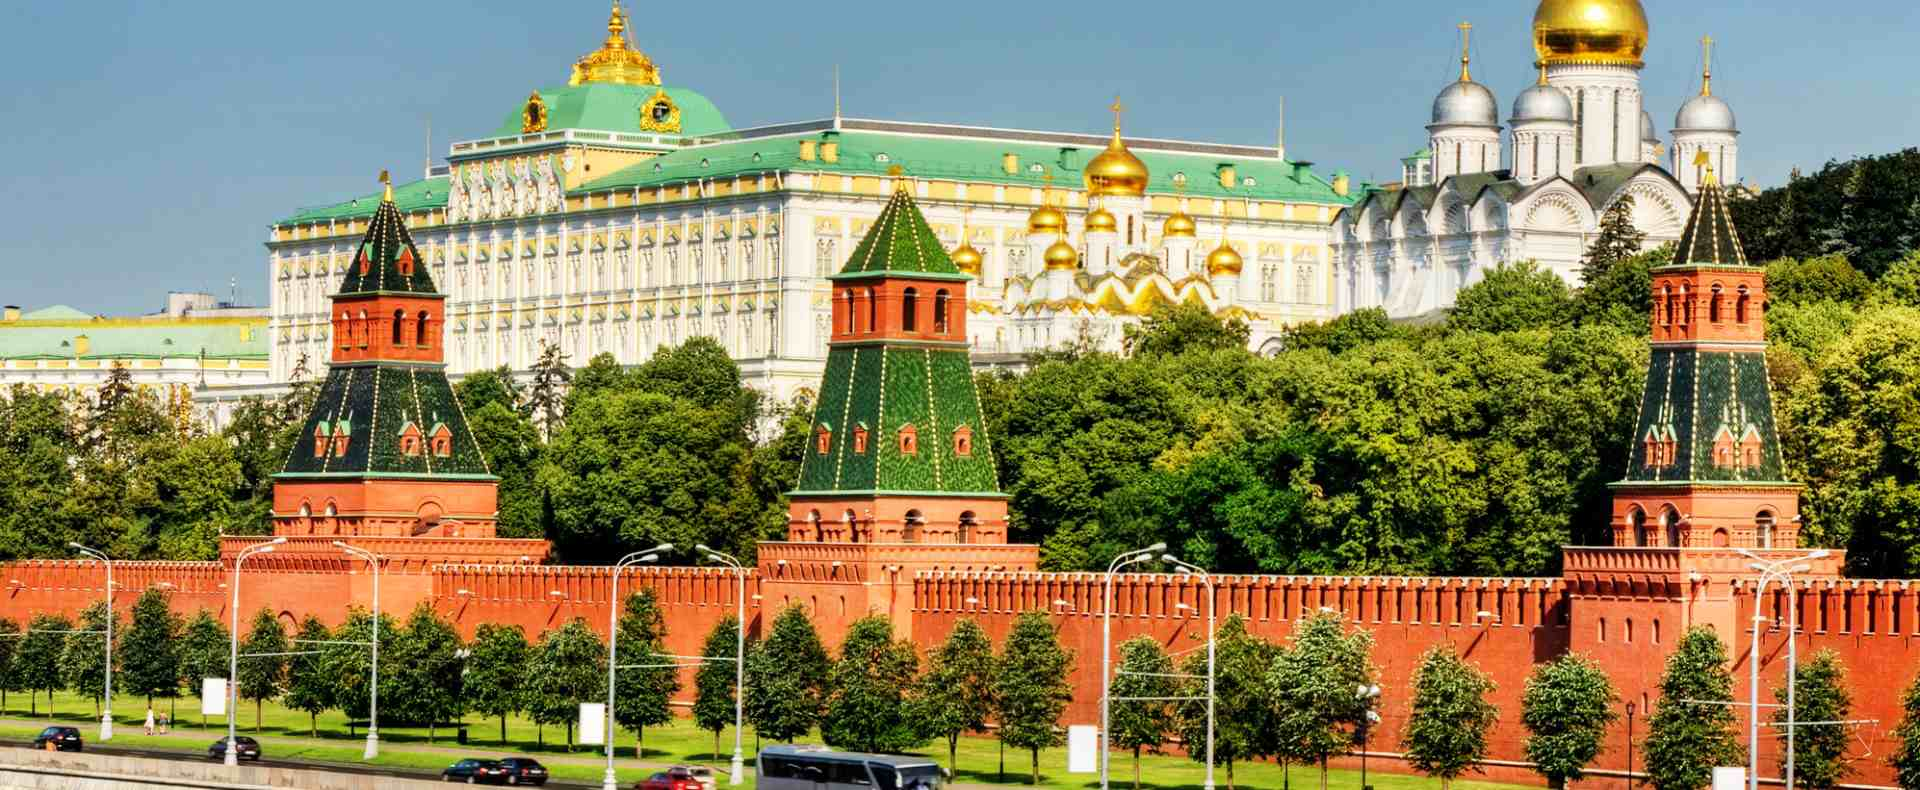 The Kremlin, Moscow, Russia Gallery